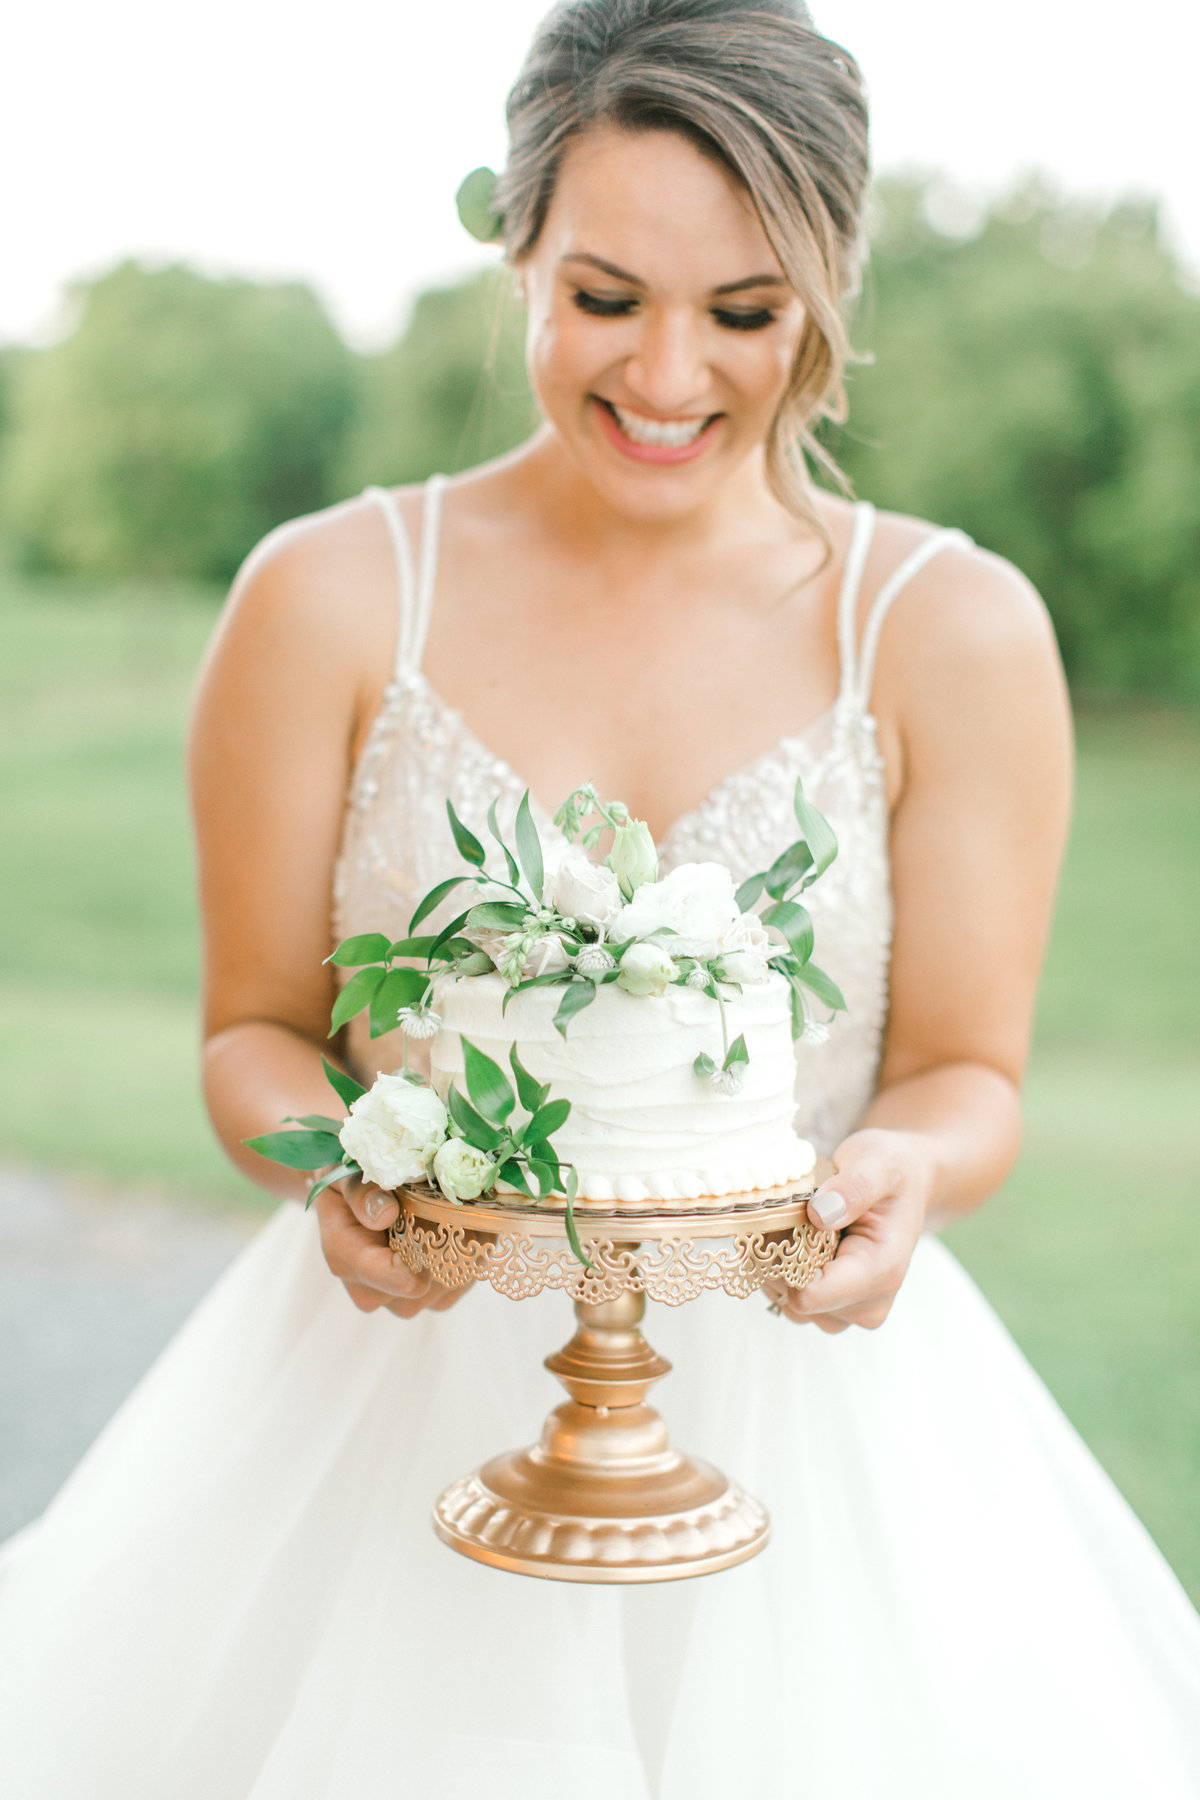 Warrenwood Manor - Kentucky Wedding Venue - Photo by Leanne Hunley 00064